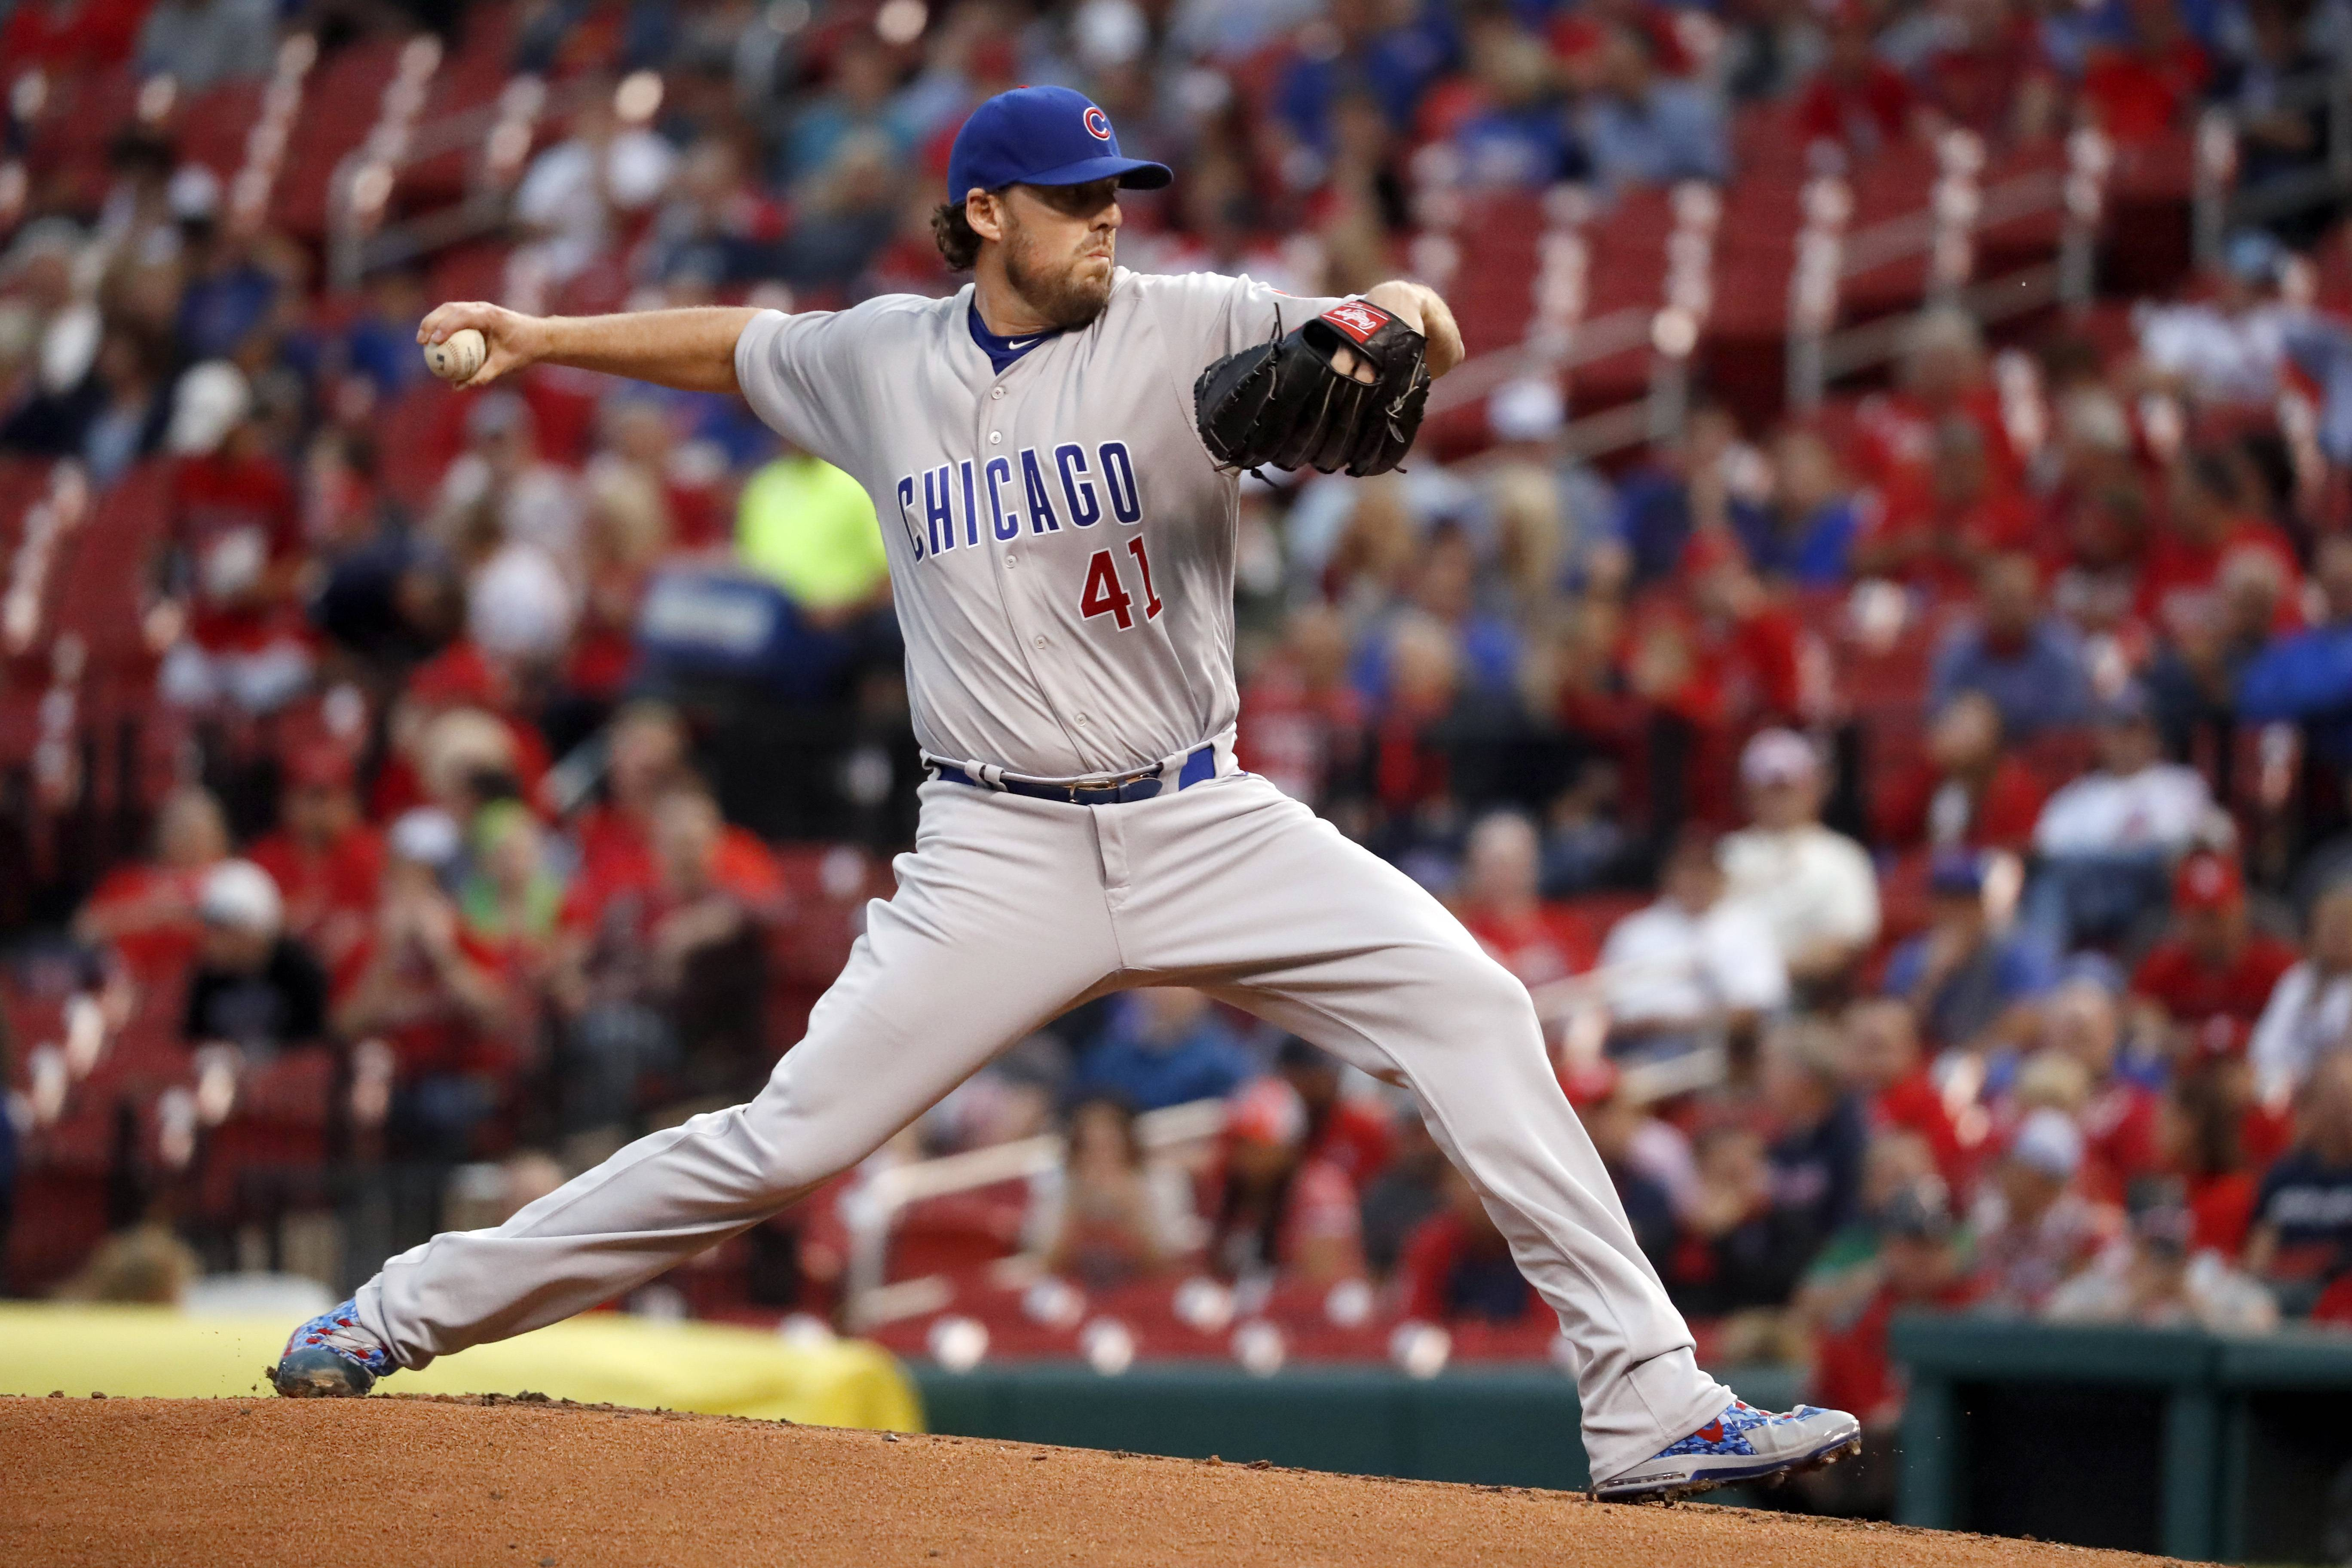 Veteran pitcher John Lackey has made the Chicago Cubs' roster for the National League division series against the Washington Nationals.